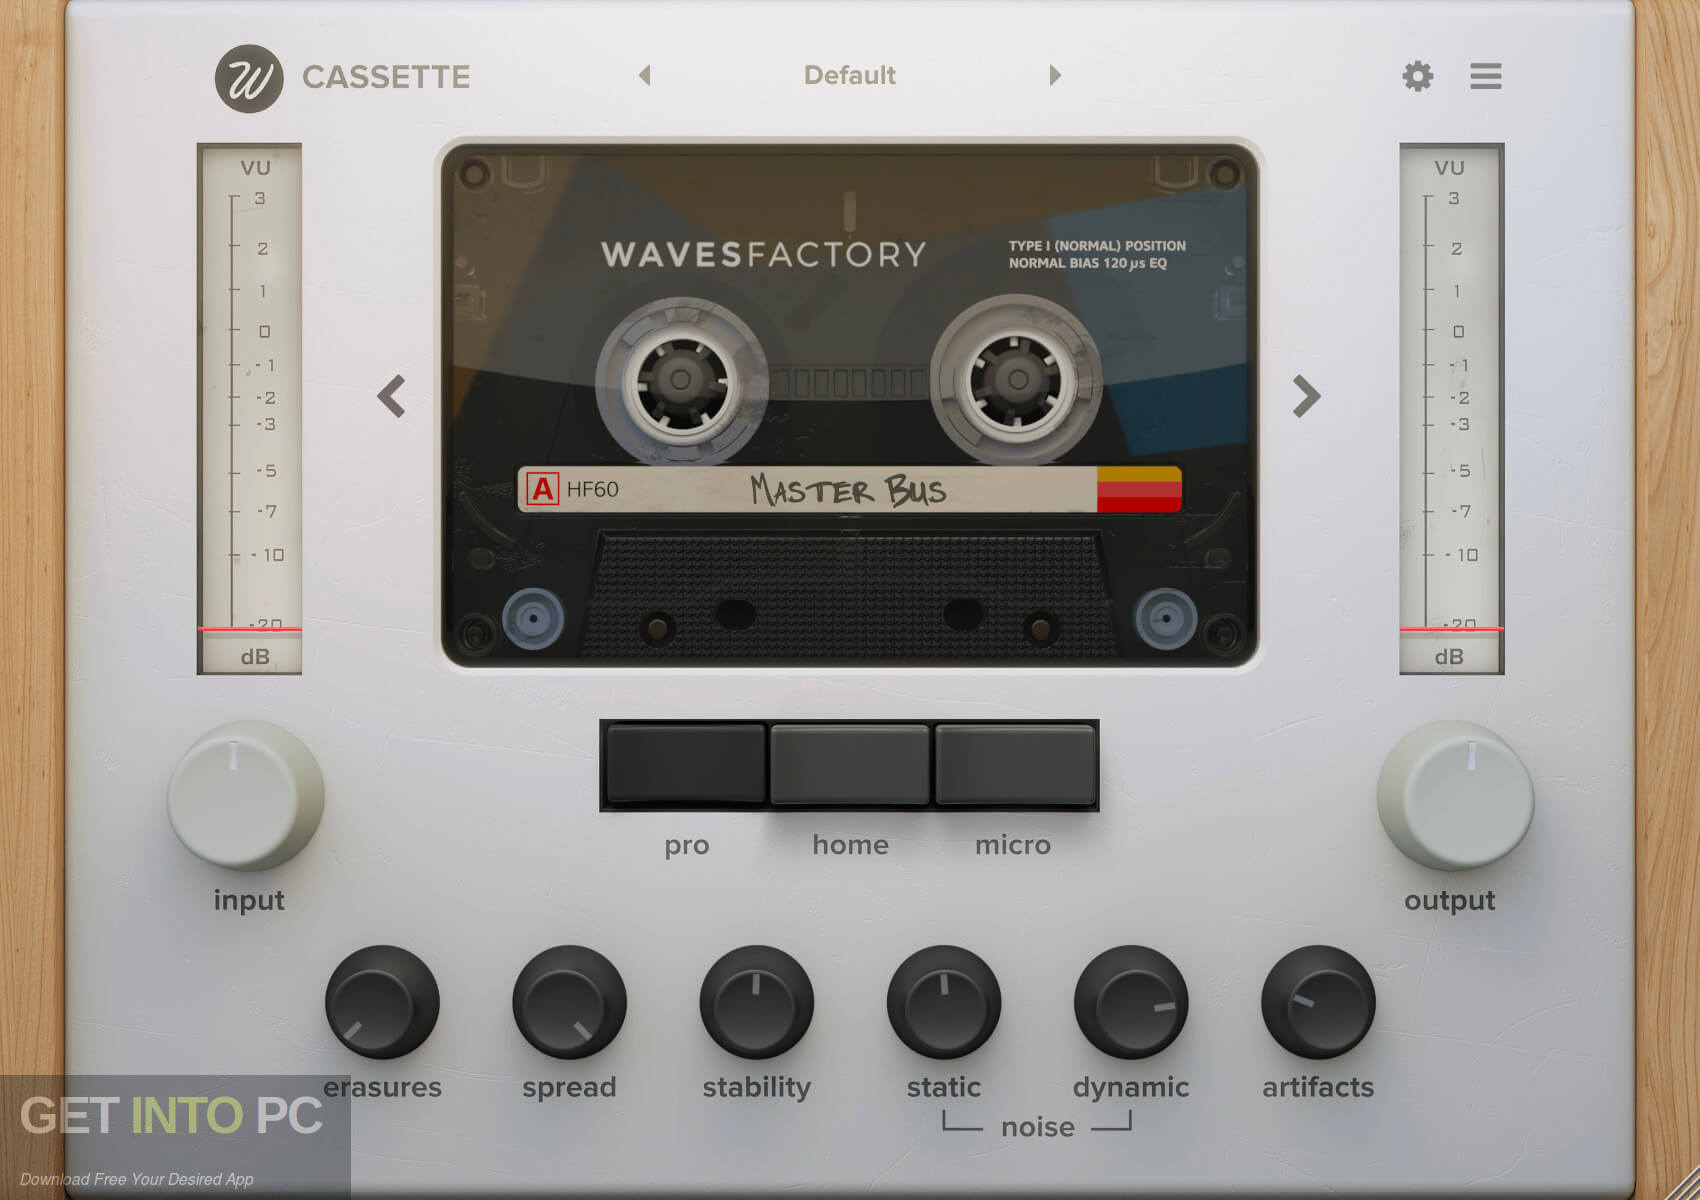 Wavesfactory Cassette Latest Version Download